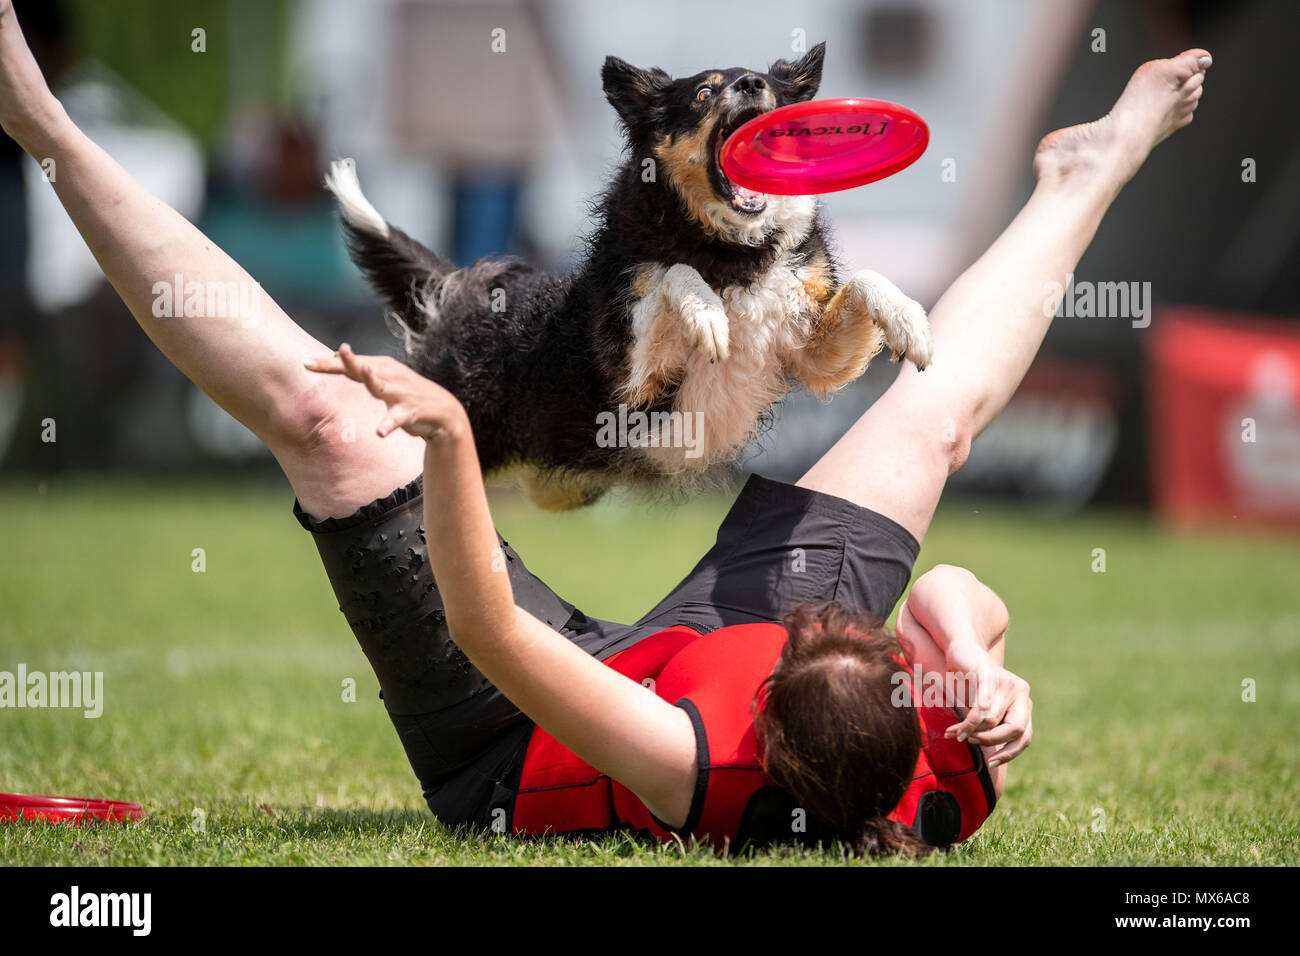 03 May 2018, Germany, Erftstadt: Nadine Averesch and her dog Fanta taking part in the discipline 'freestyle' at the dog frisbee tournament. The participant throws up to seven frisbees that his dog has to catch. The freestyle event is combined to music. Around 60 particpants from 7 countries take part in the event. Photo: Marius Becker/dpa Stock Photo